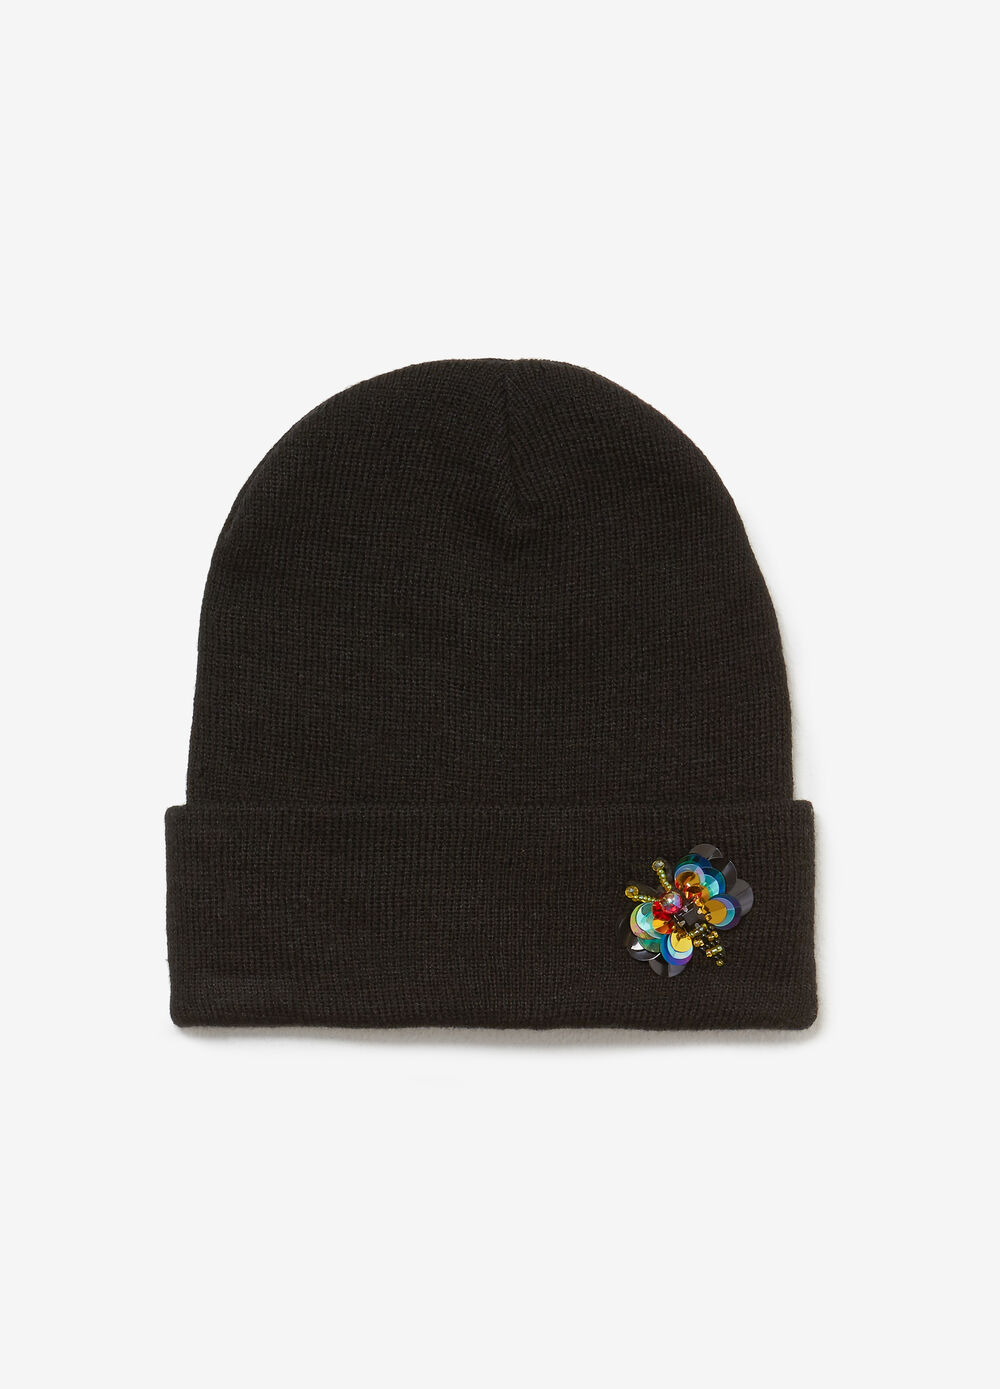 Knit hat with bee